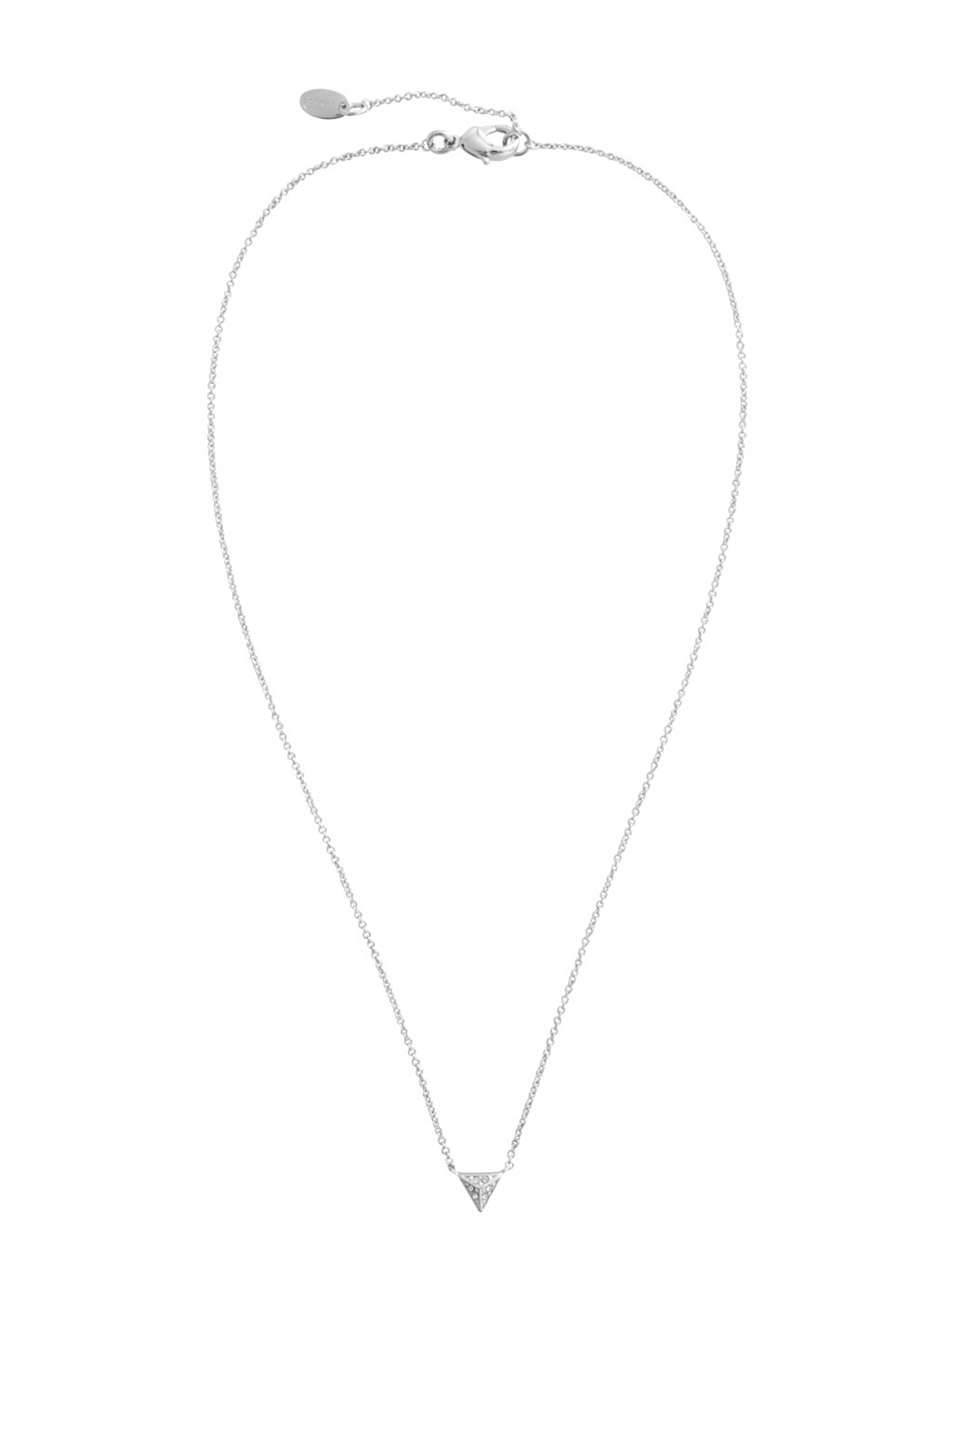 Link chain with a pyramid-shaped pendant trimmed with zirconia